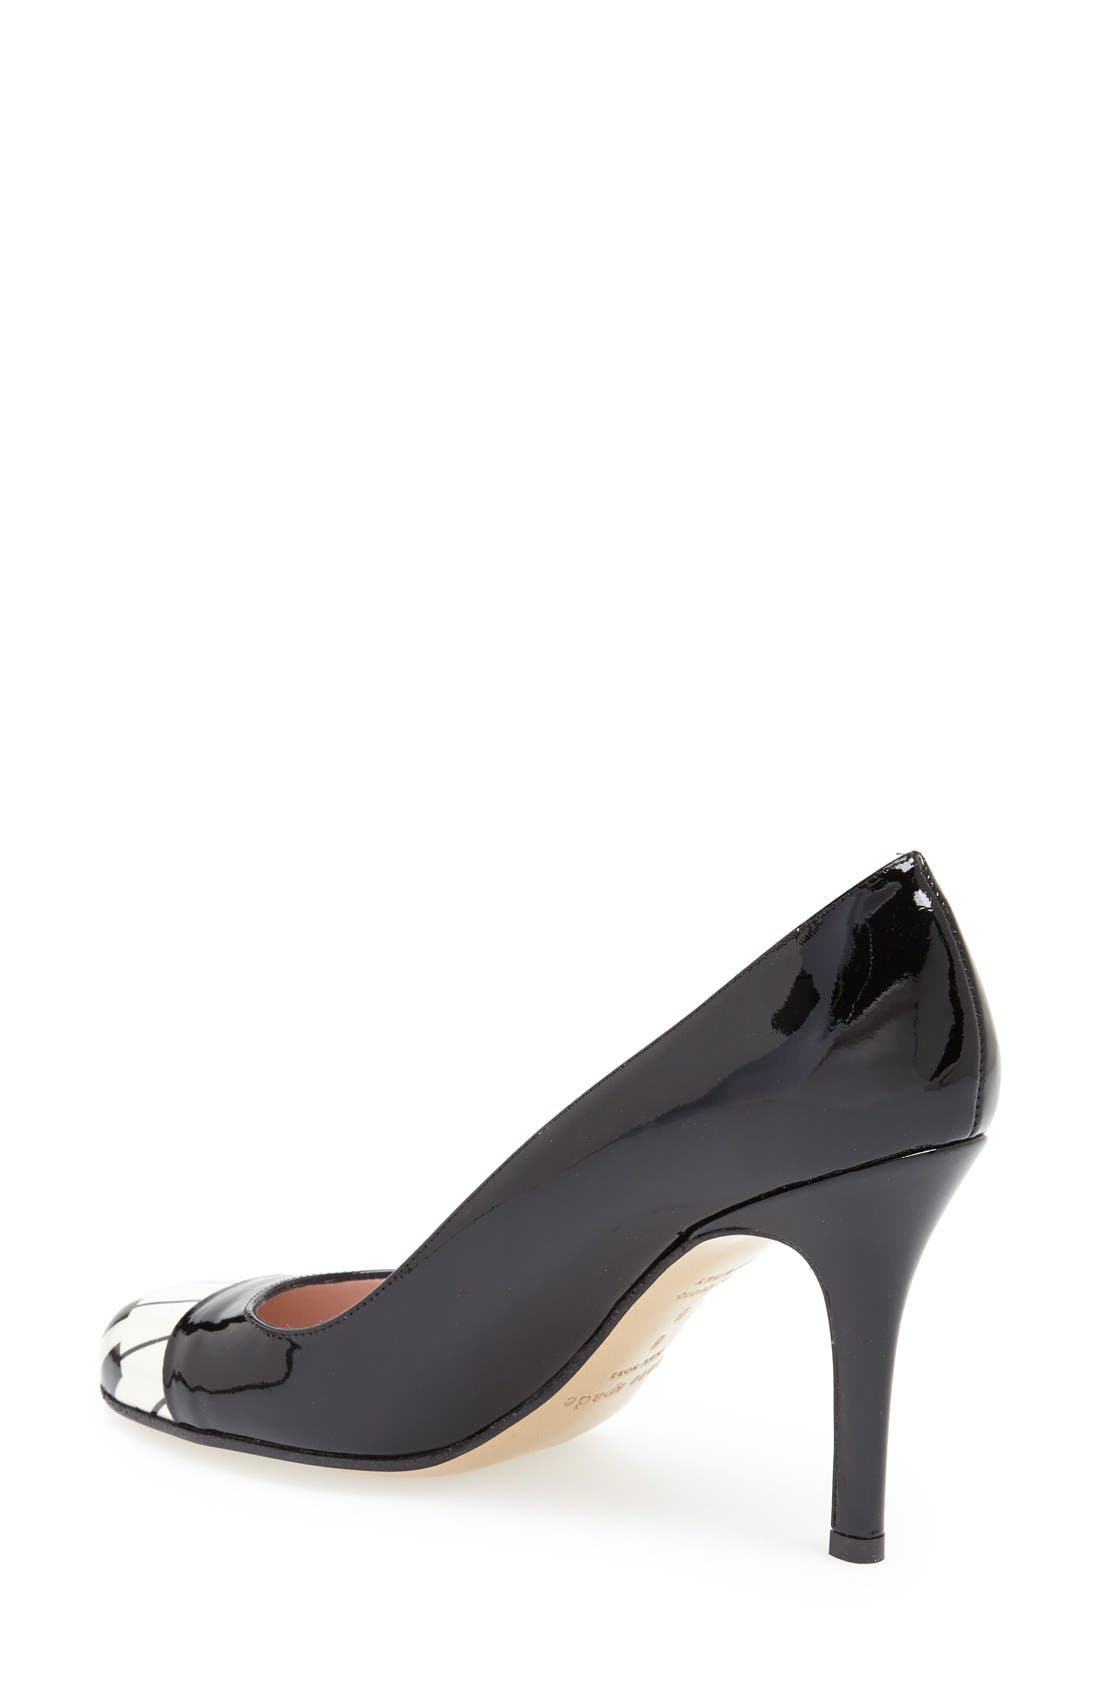 Alternate Image 2  - kate spade new york 'keys' pump (Women)